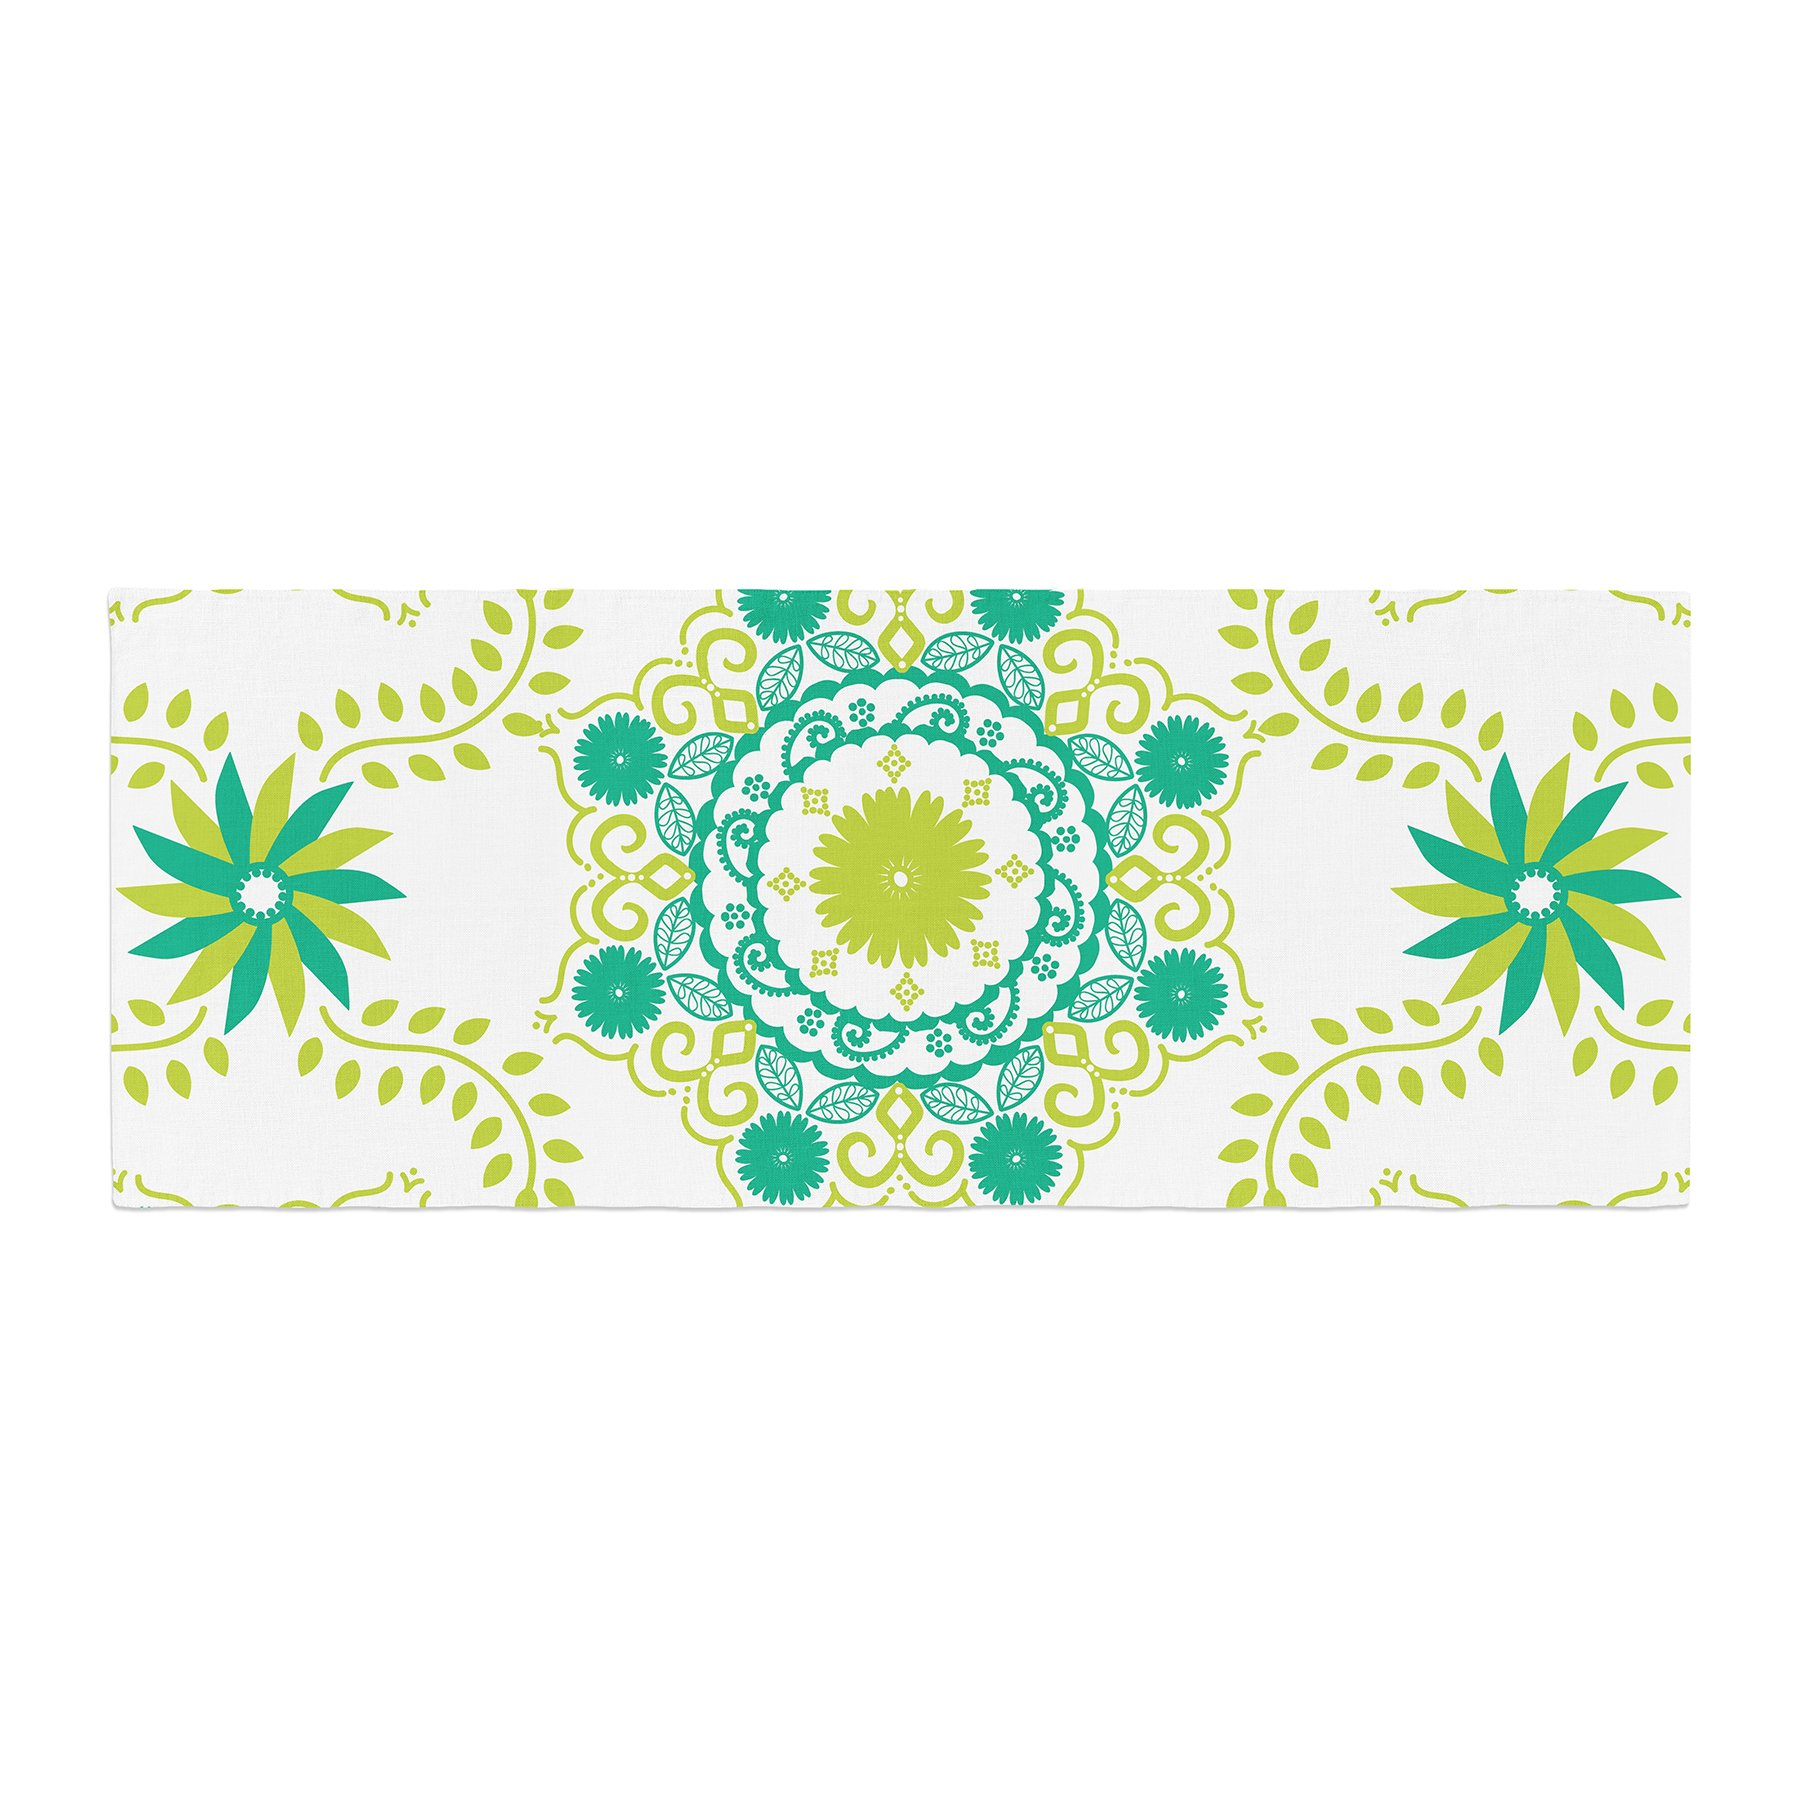 Kess InHouse Anneline Sophia Let's Dance Green Teal Floral Bed Runner, 34'' x 86''